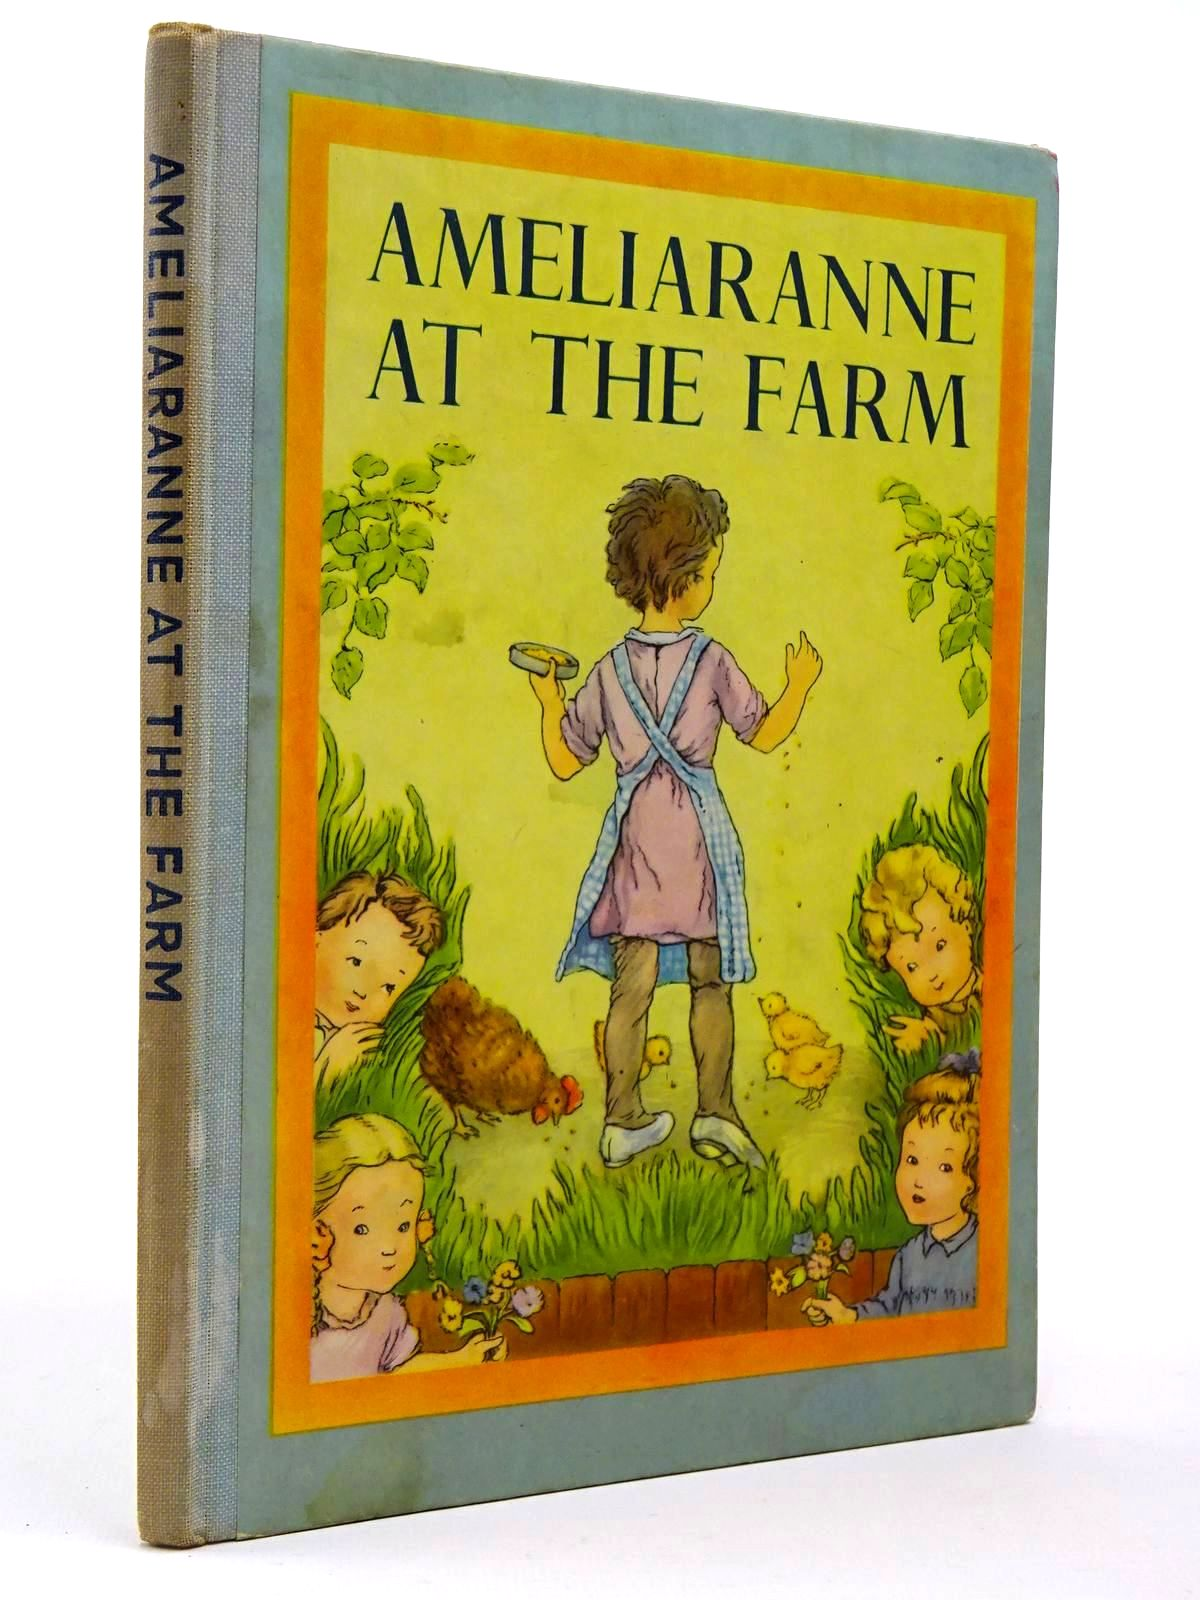 Photo of AMELIARANNE AT THE FARM written by Heward, Constance illustrated by Dushinsky, Greta published by George G. Harrap & Co. Ltd. (STOCK CODE: 2129607)  for sale by Stella & Rose's Books